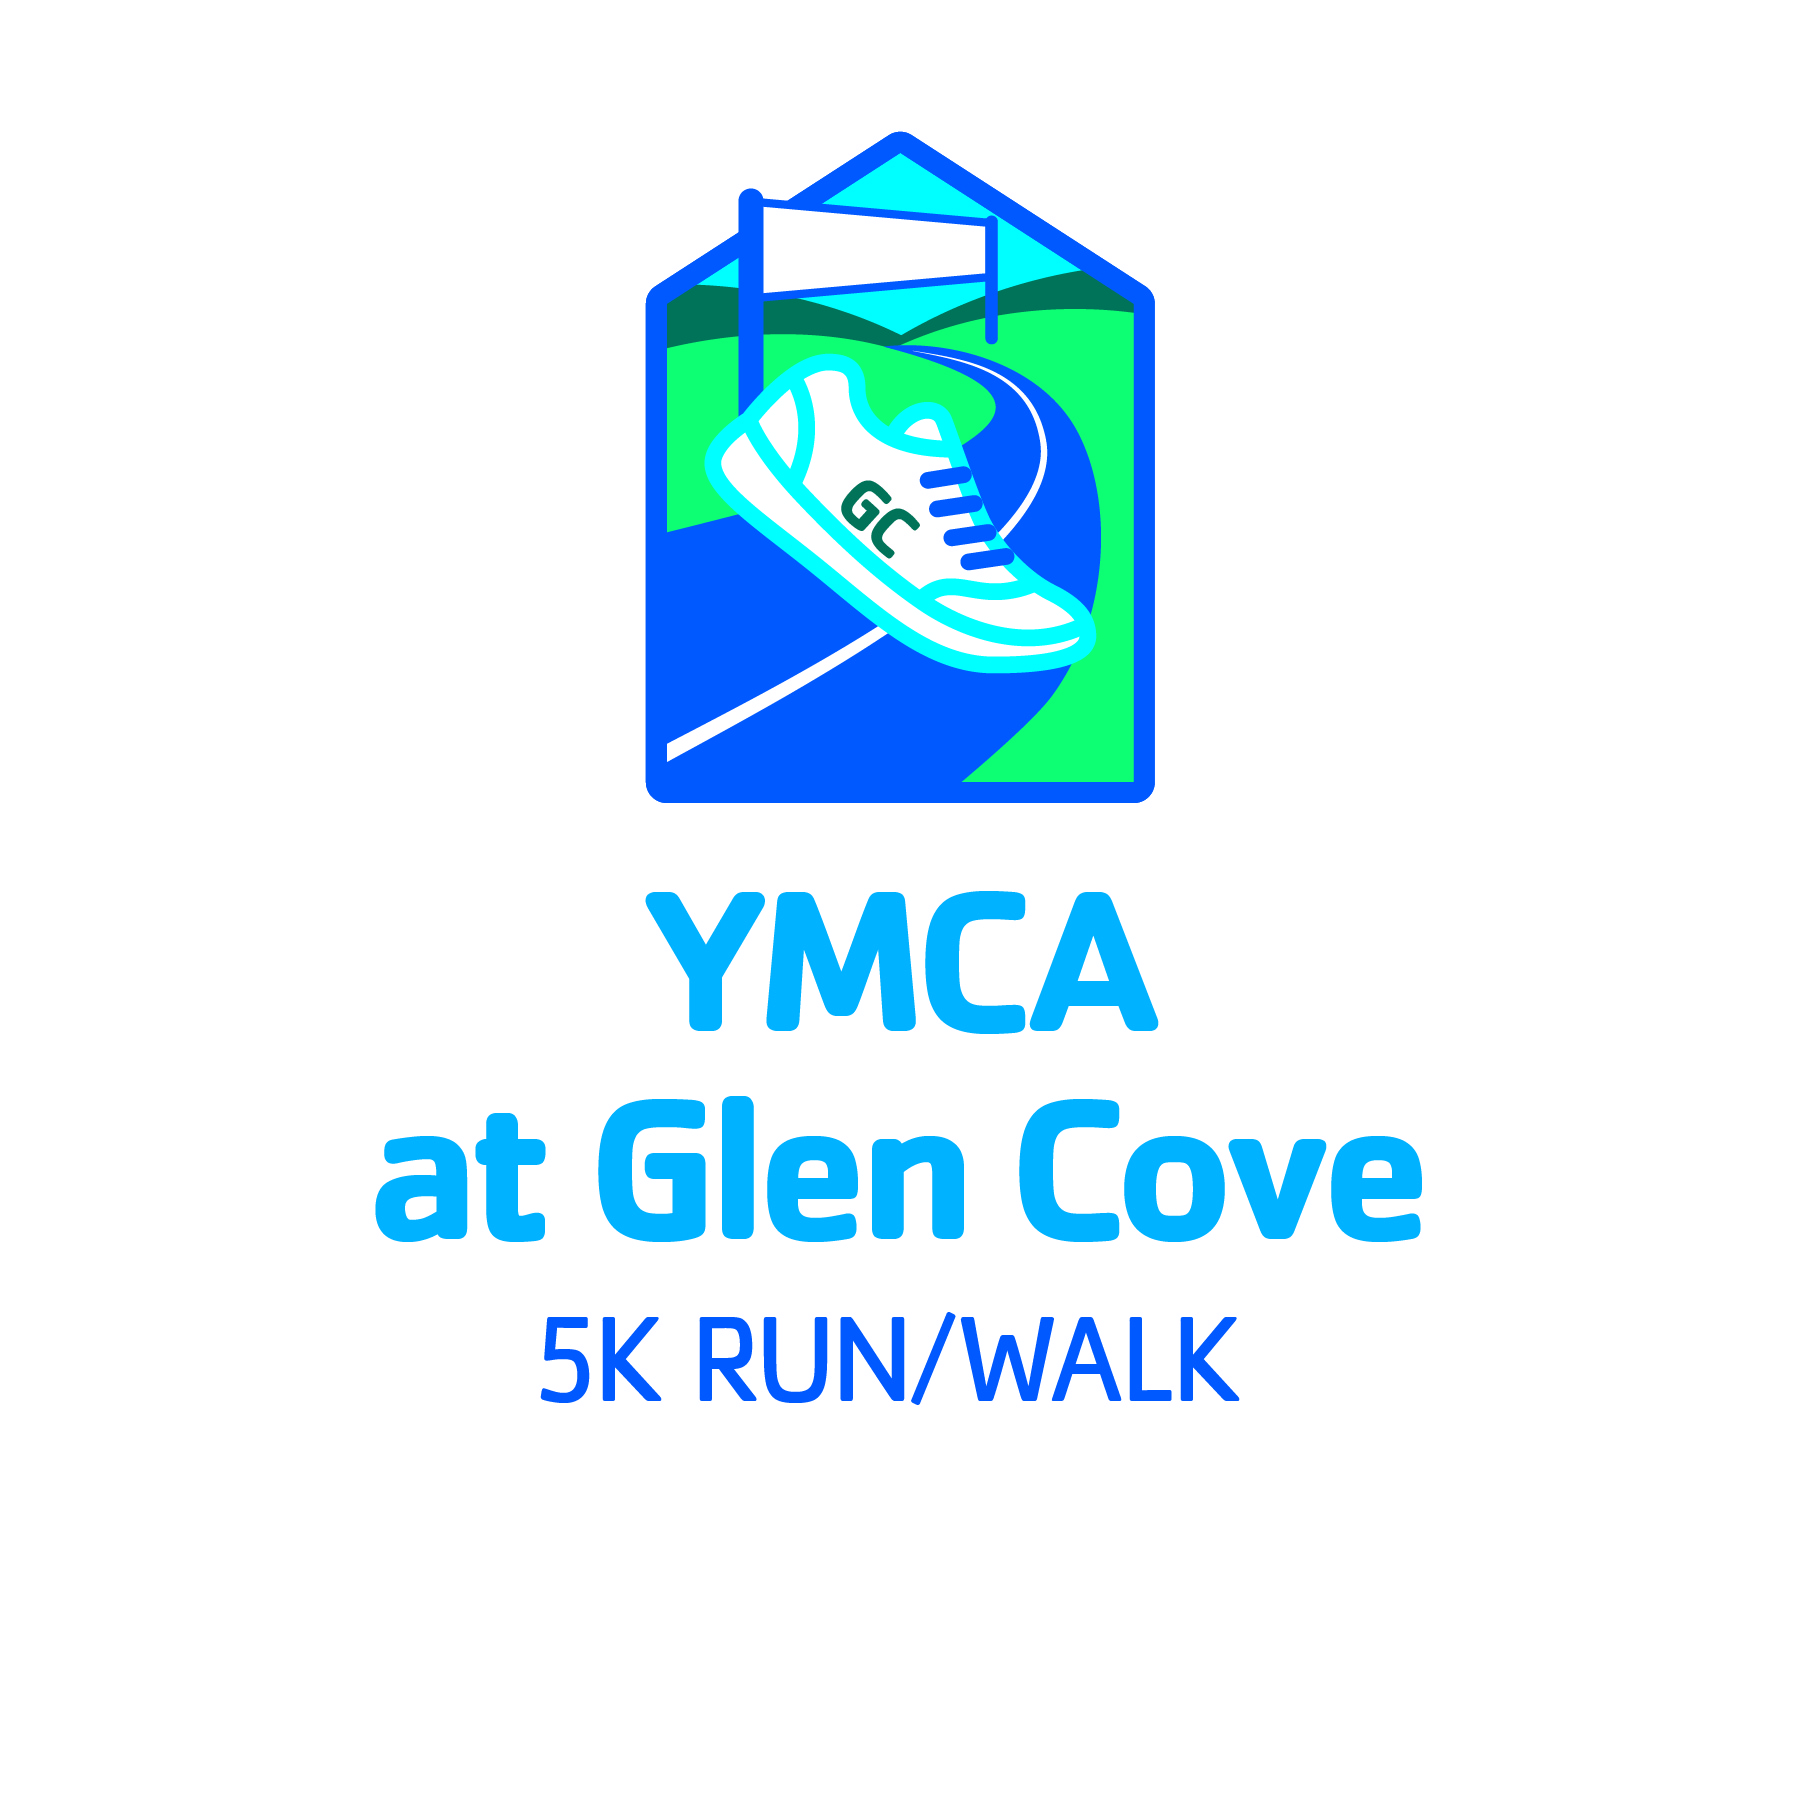 YMCA glen cove 5k run logo